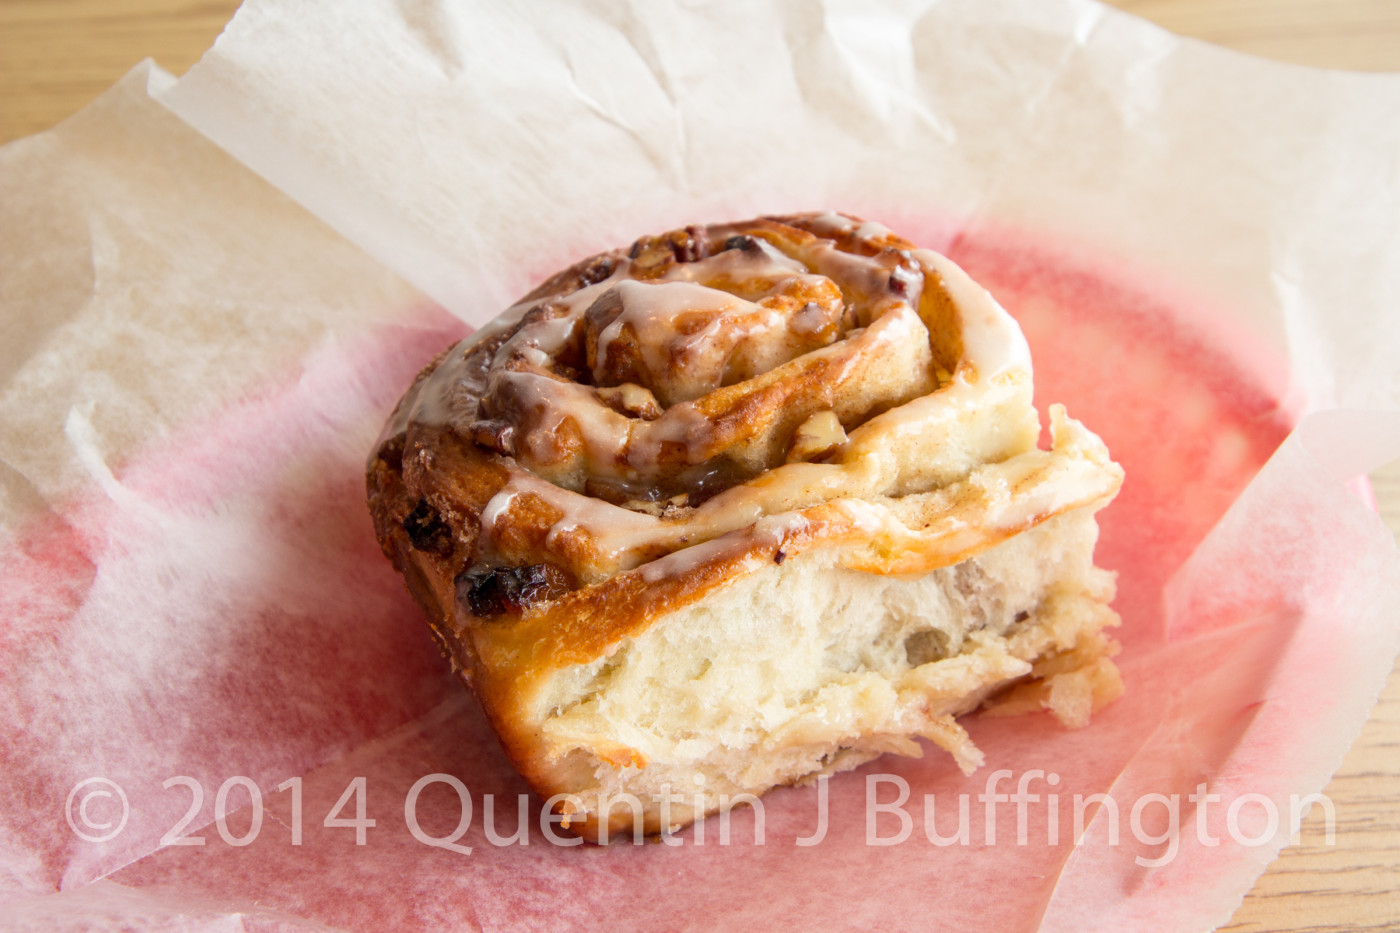 A piping hot fresh Bacon Cinnamon Roll fresh from the ovens at Mareta Deli in LaSalle Illinois.